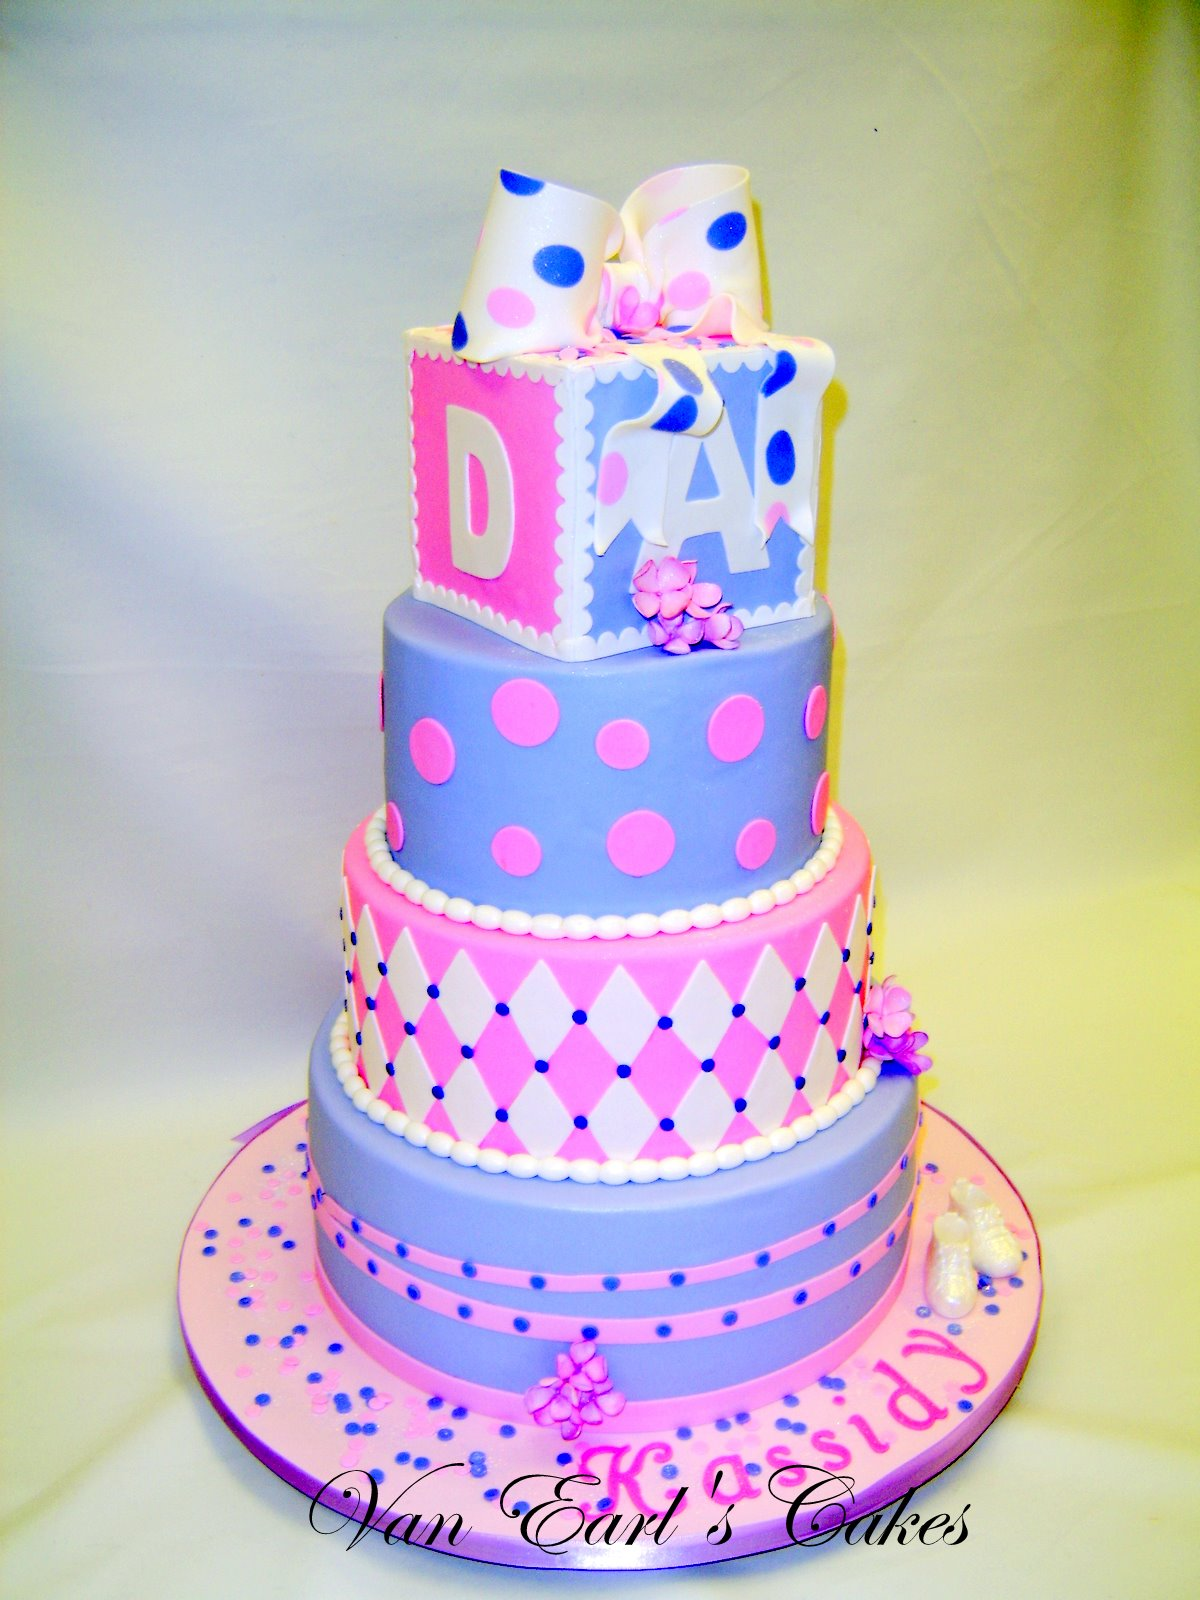 van earl 39 s cakes purple pink baby shower cake